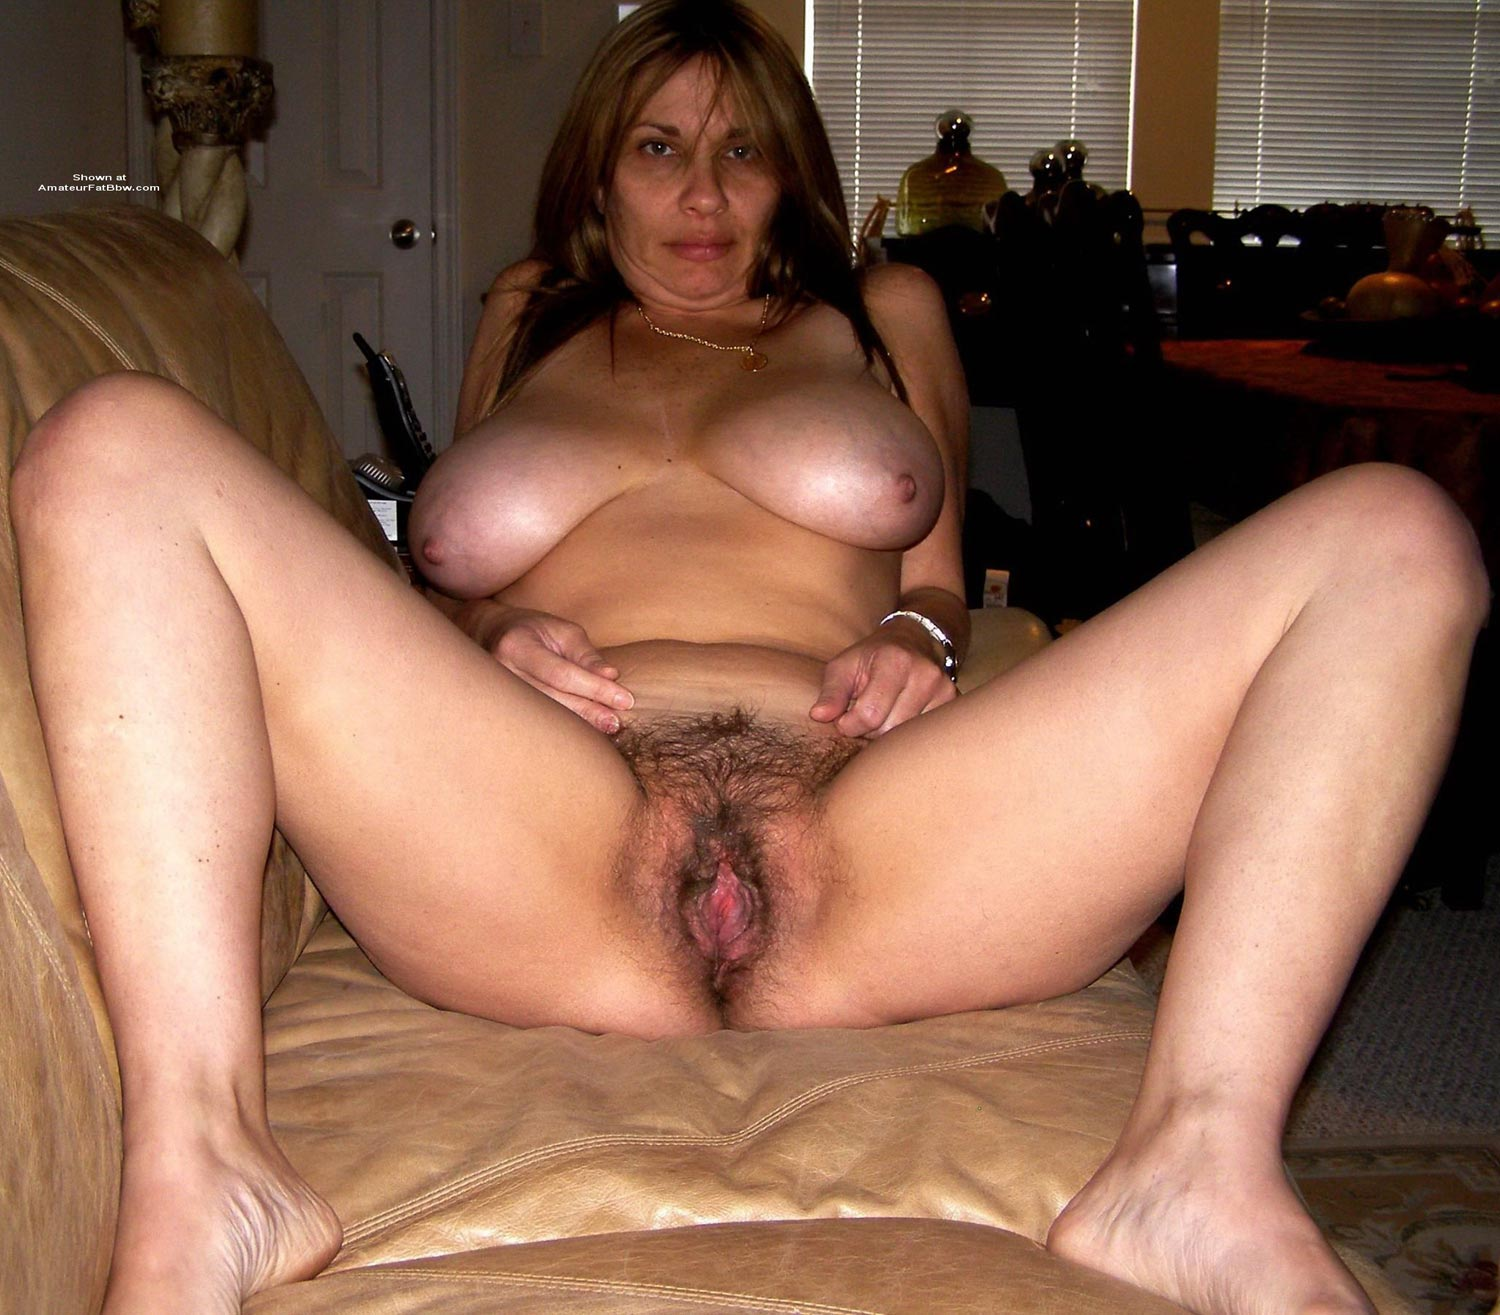 Supermilfs. Elle mature plump did you